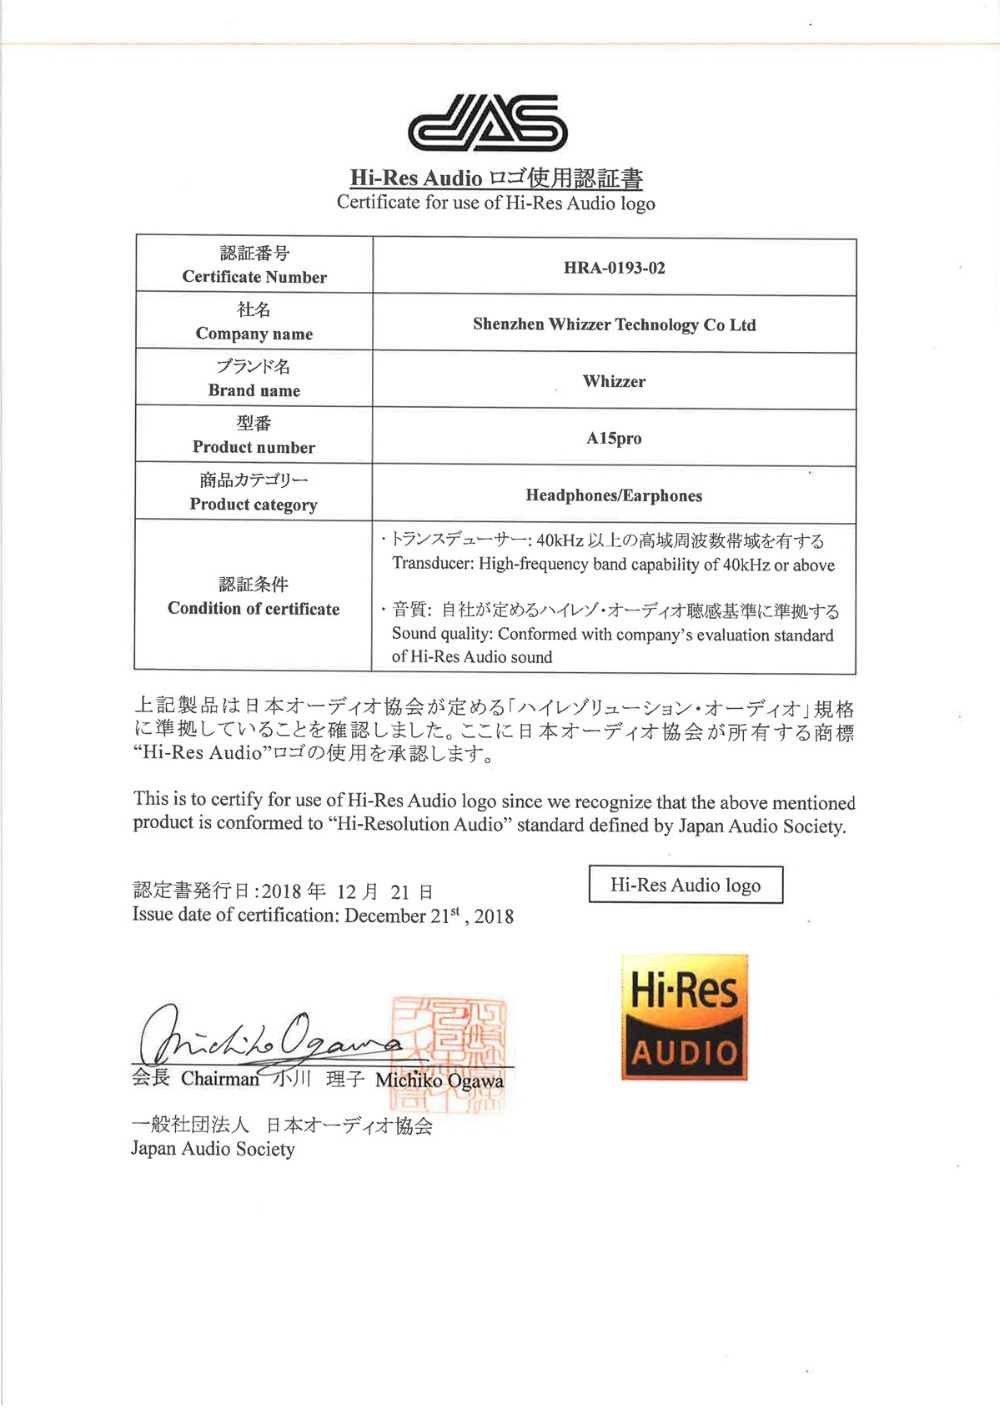 HRA Certificate_2_Whizzer_A15pro